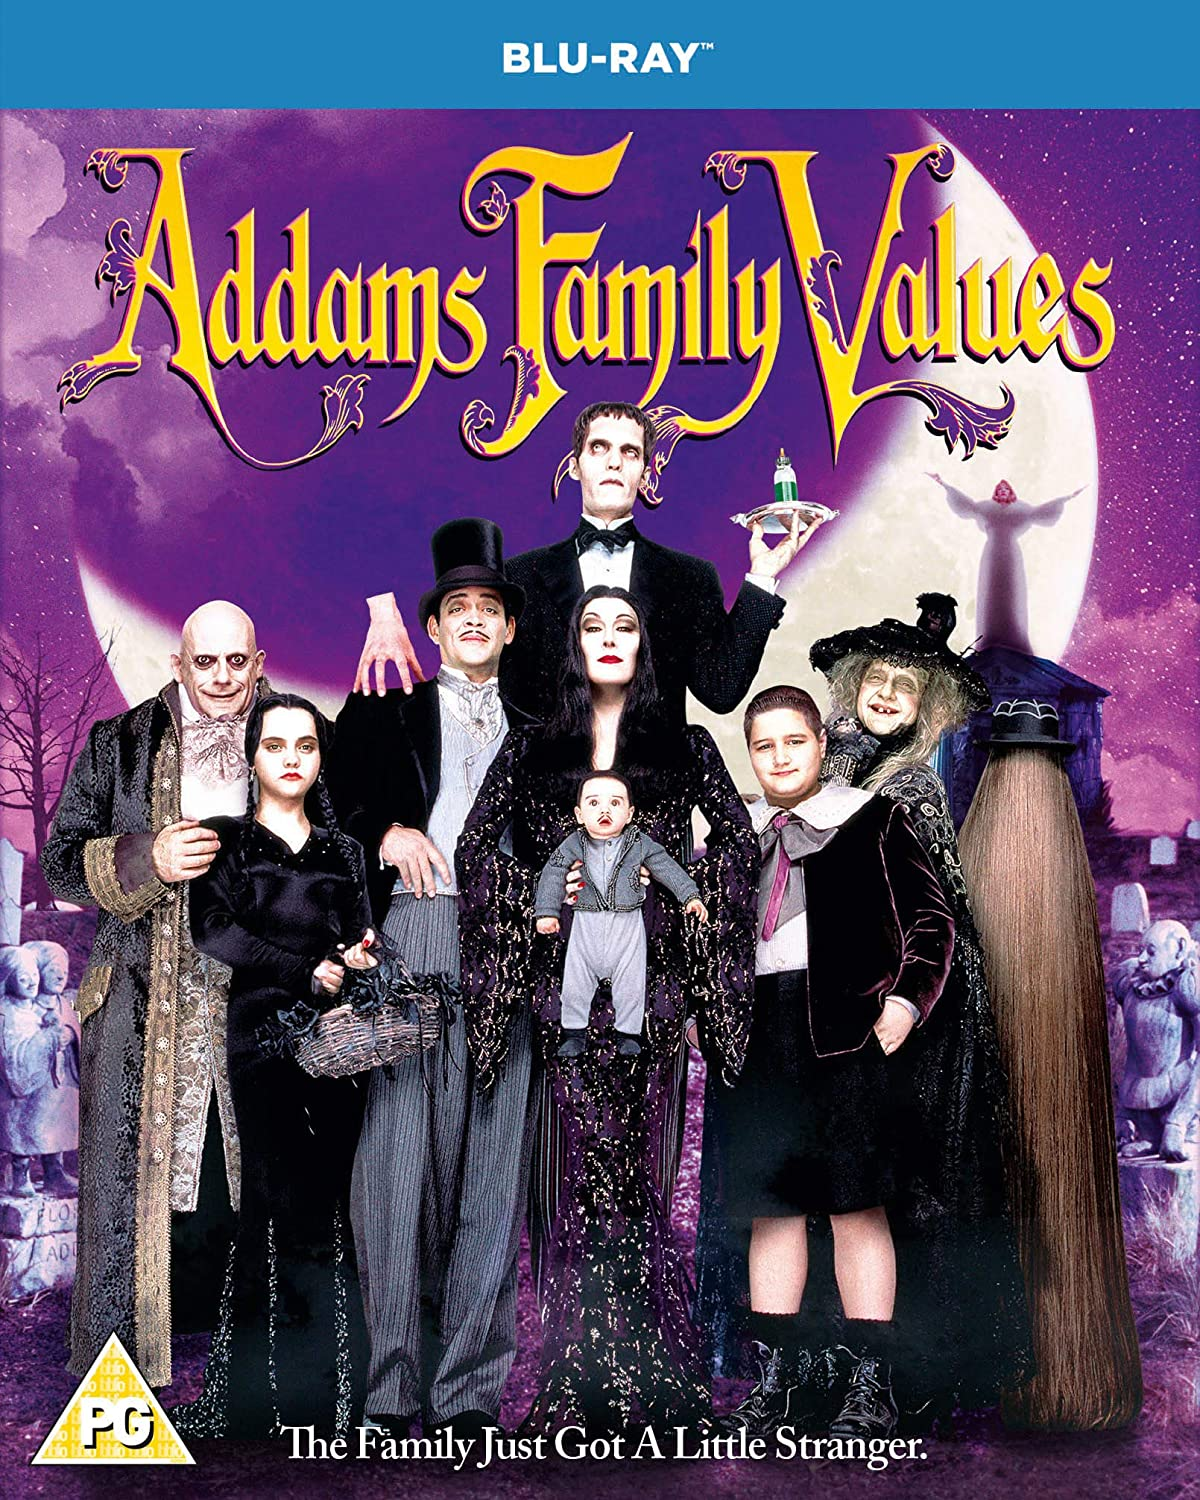 Addams Family Values Blu-ray Reservation Region sold out Free 2019